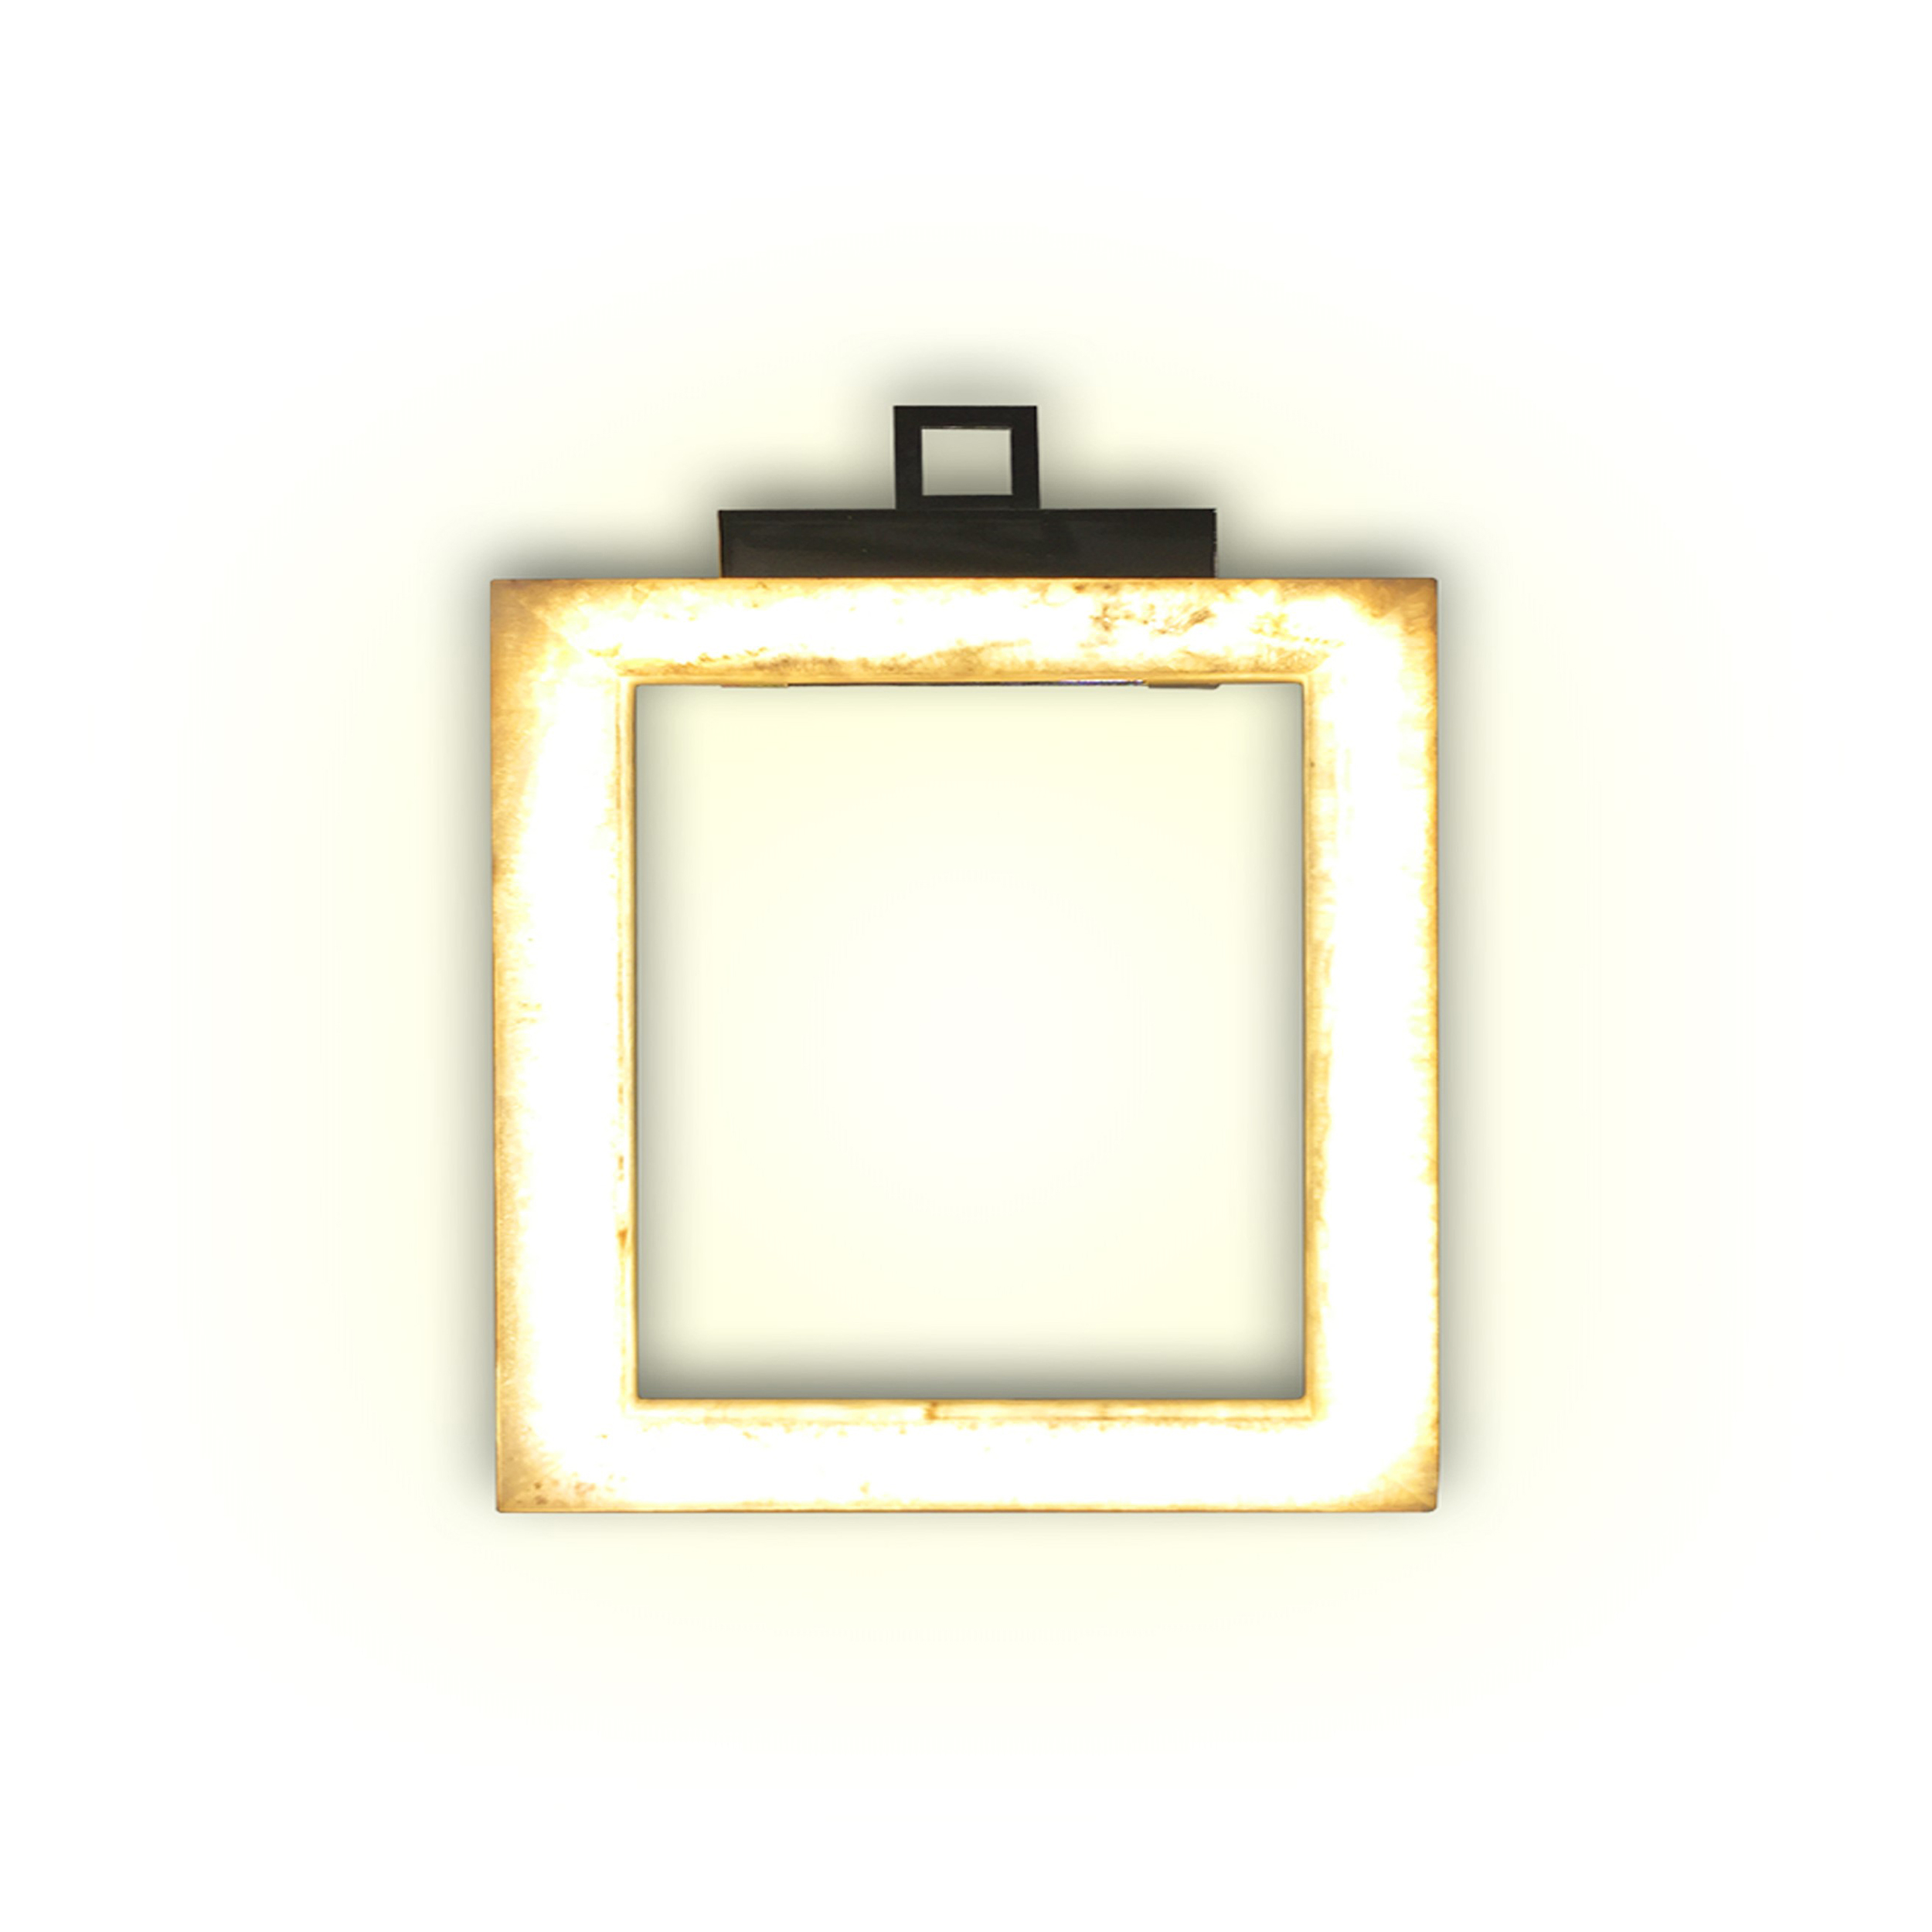 Contardi Uffizi Ap 1 Wall Light Marble B